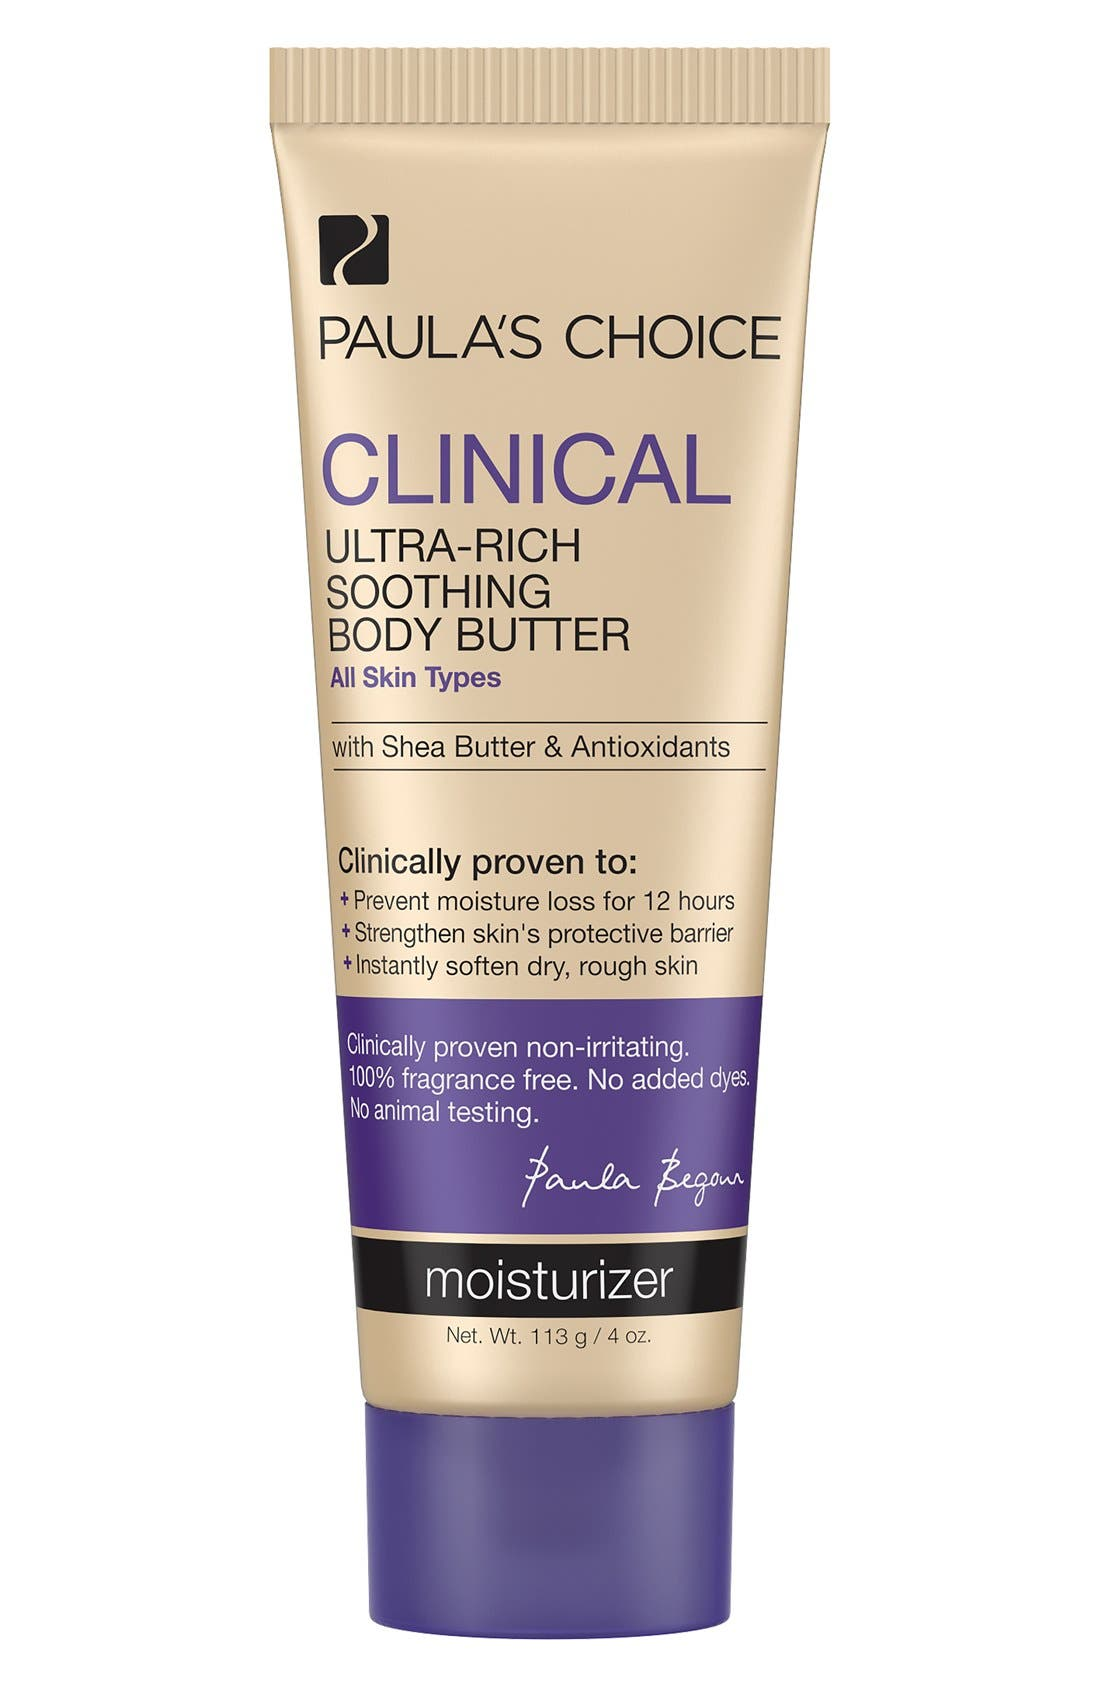 Paula's Choice Clinical Ultra-Rich Soothing Body Butter